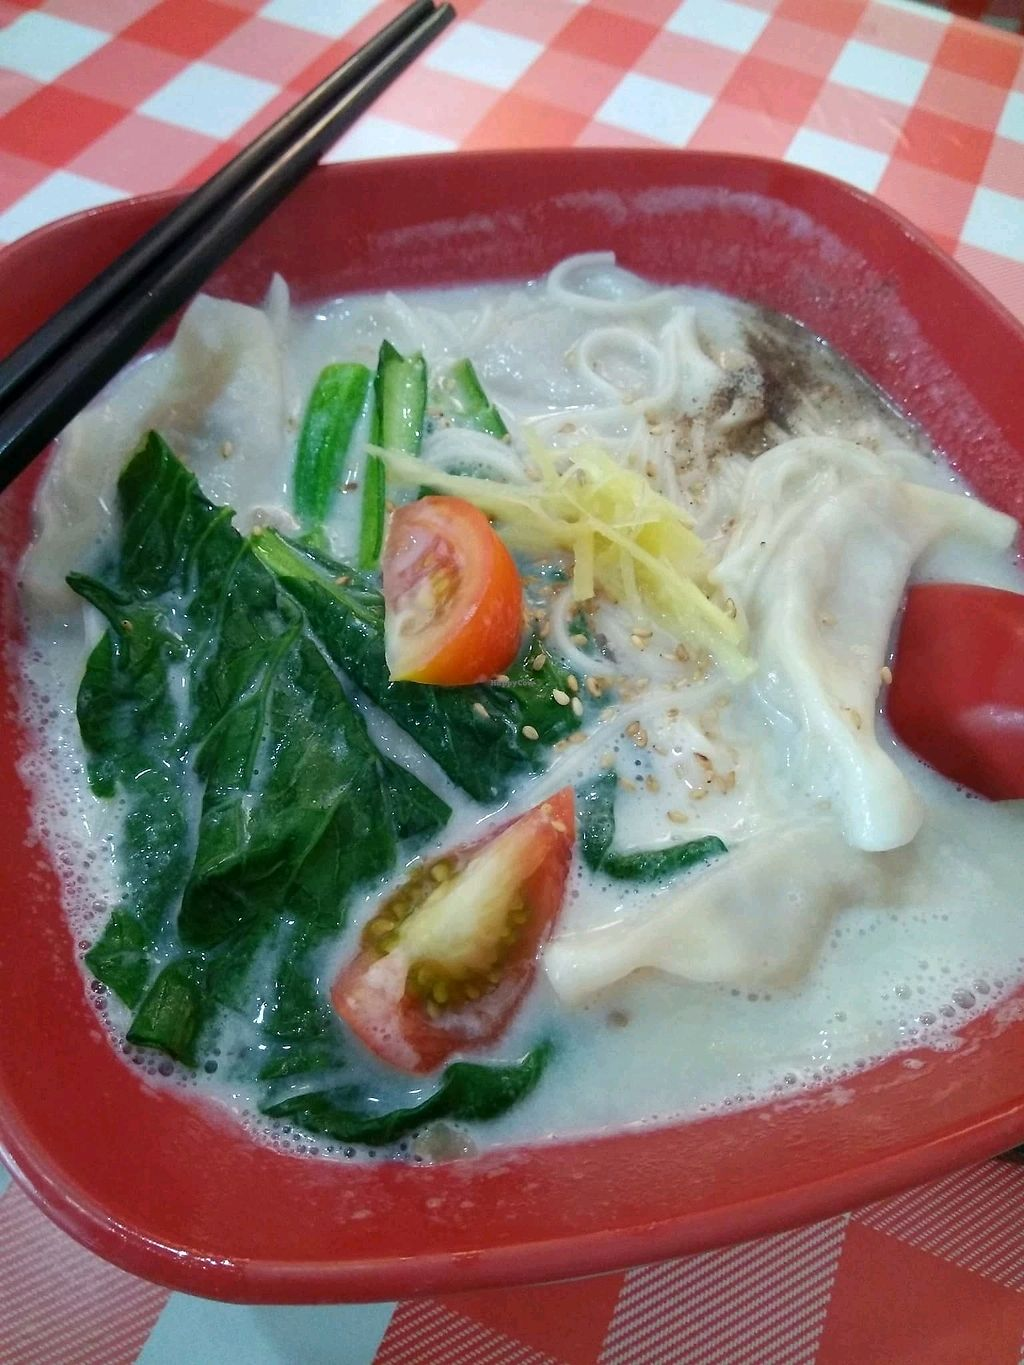 "Photo of O'Bean - Kiosk  by <a href=""/members/profile/AdelOng"">AdelOng</a> <br/>Soya soup dumpling noodle <br/> January 23, 2018  - <a href='/contact/abuse/image/46095/350041'>Report</a>"